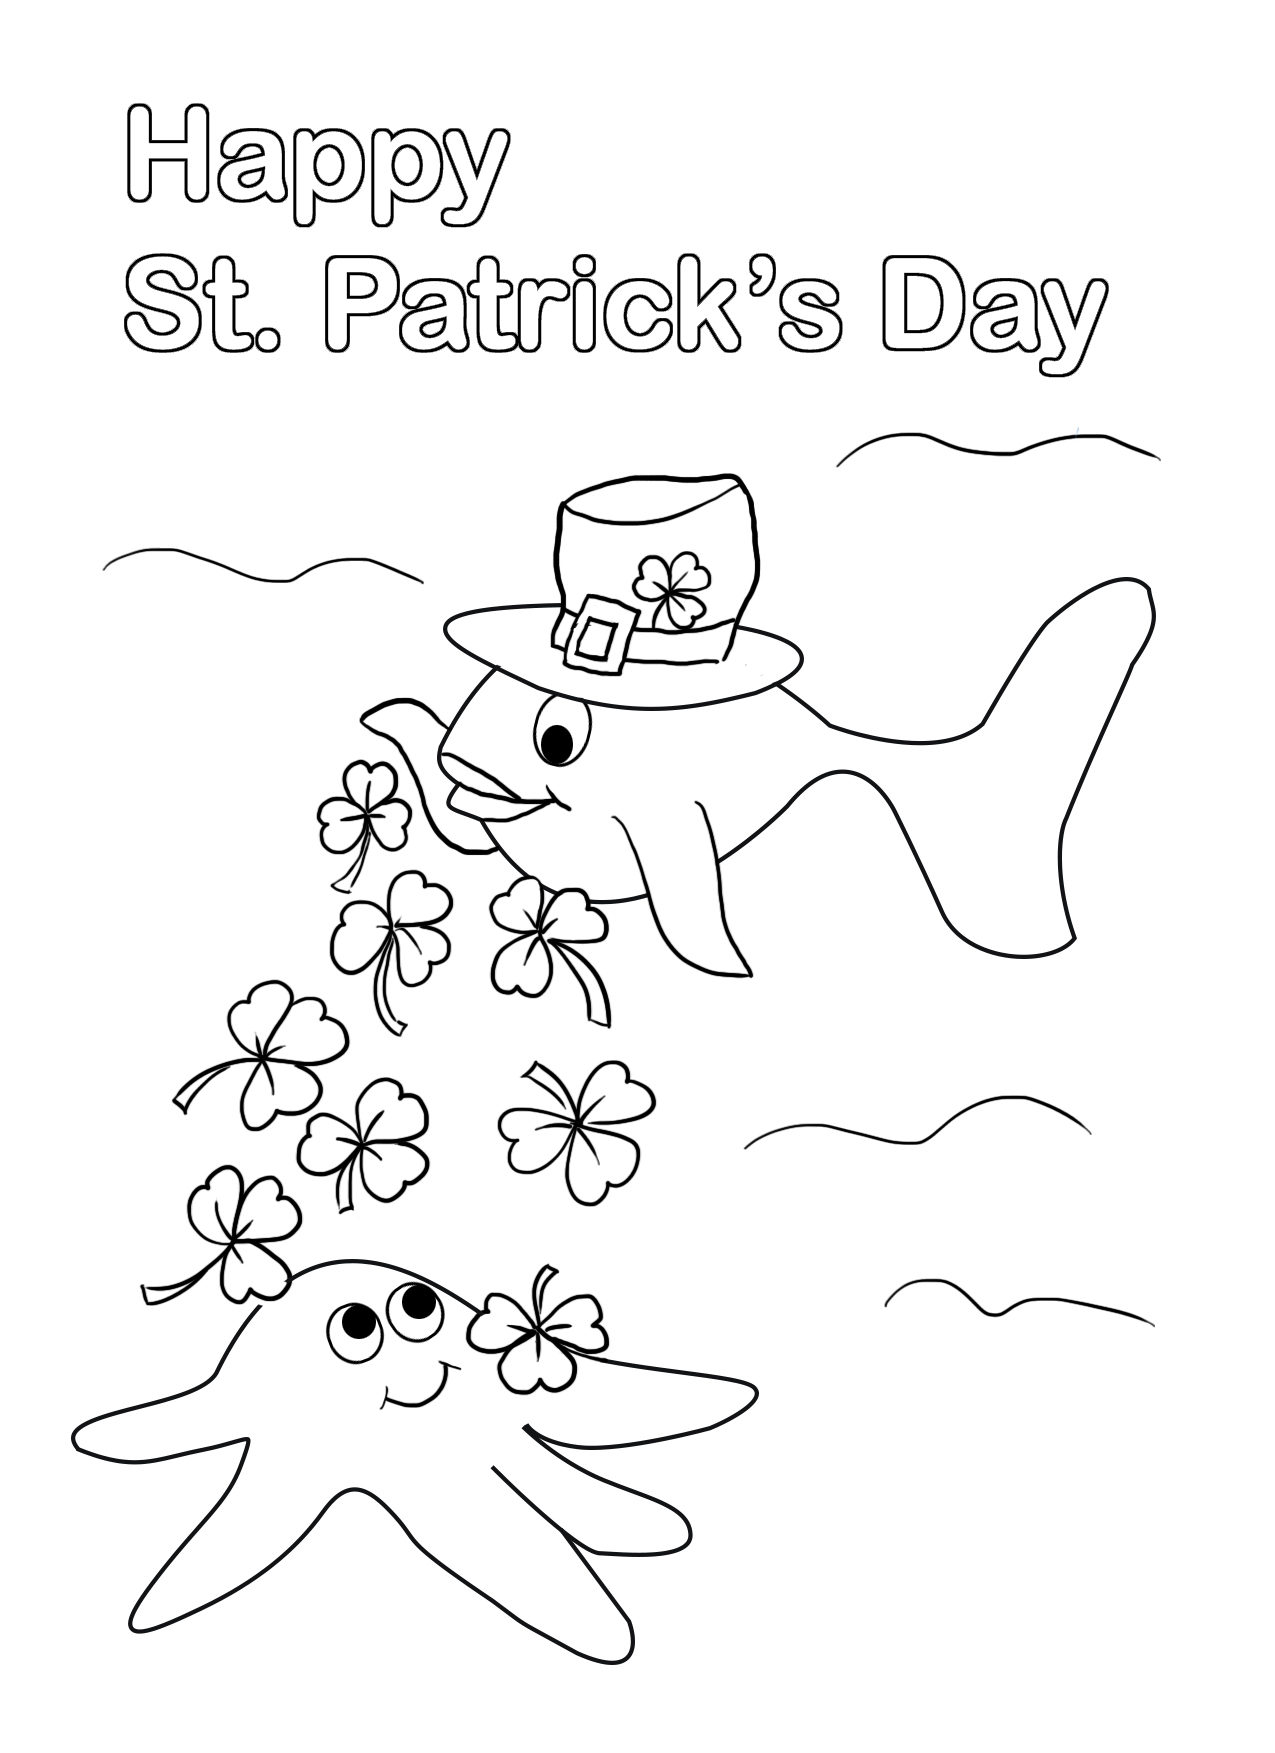 coloring page for St. Patrick's day with fish